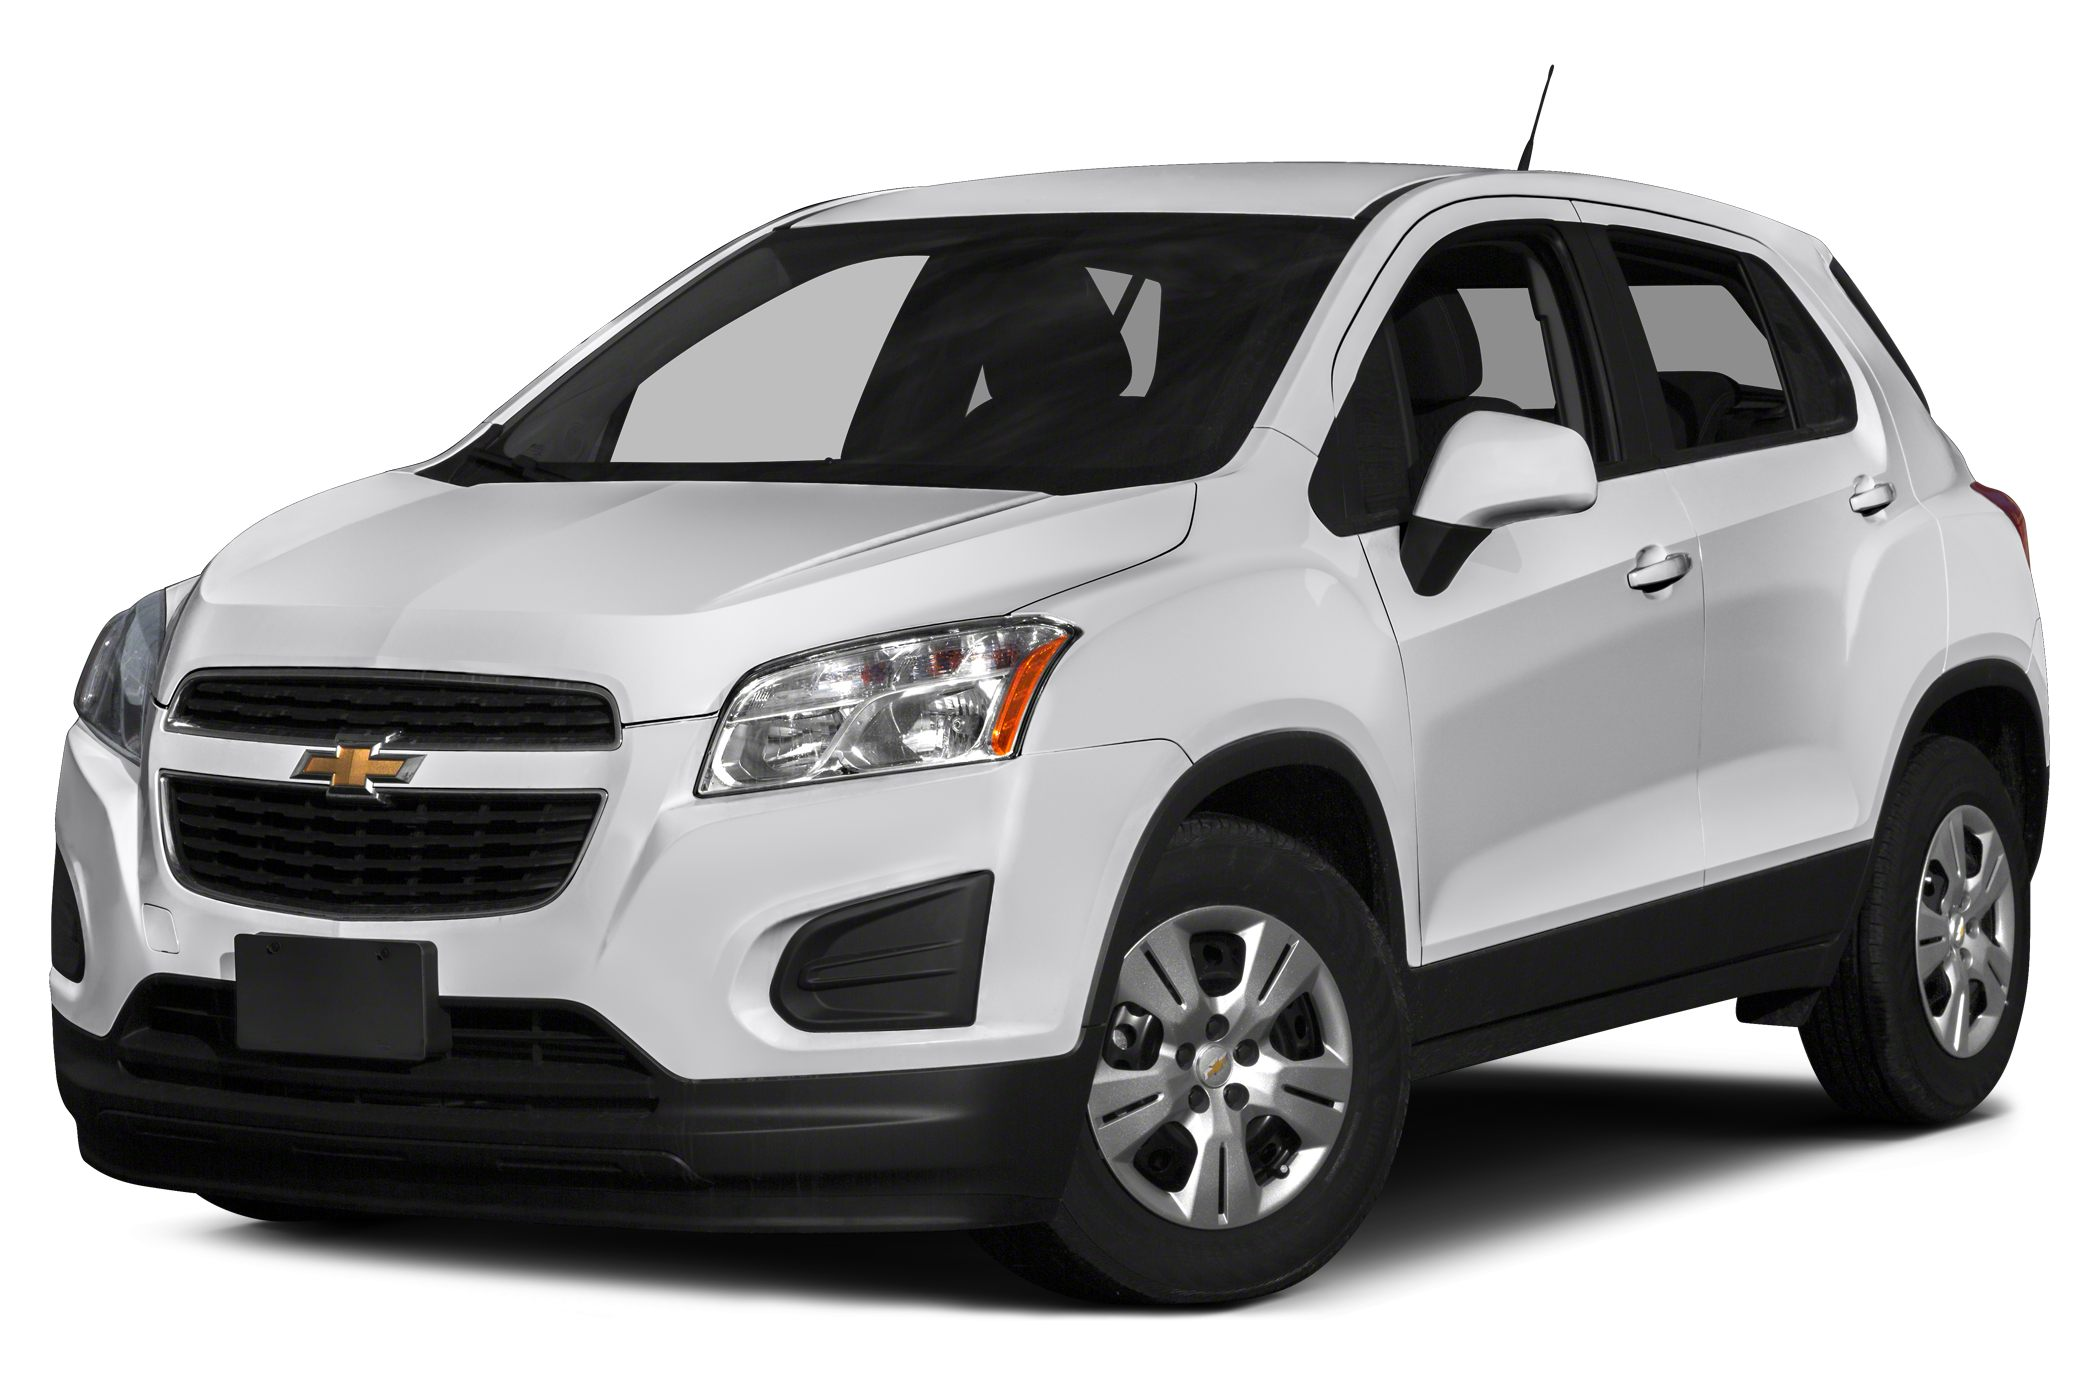 2015 Chevrolet Trax LT SUV for sale in Oneonta for $25,450 with 0 miles.